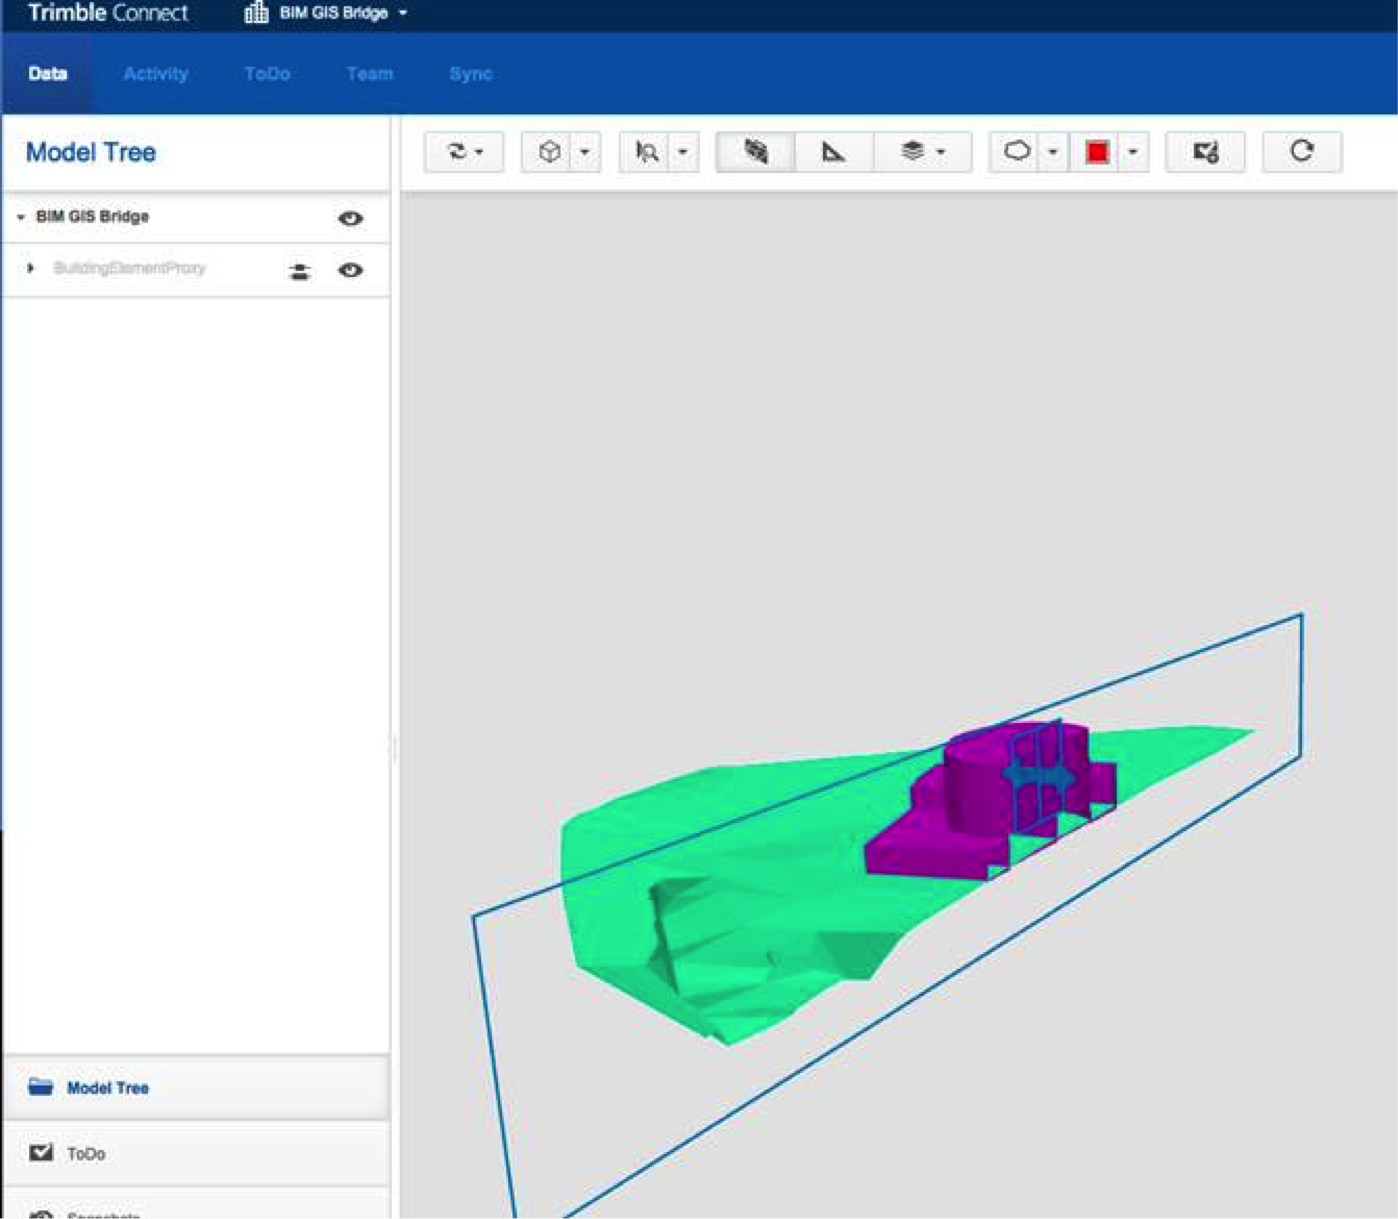 An FME-generated IFC model uploaded to Trimble Connect - in seconds.